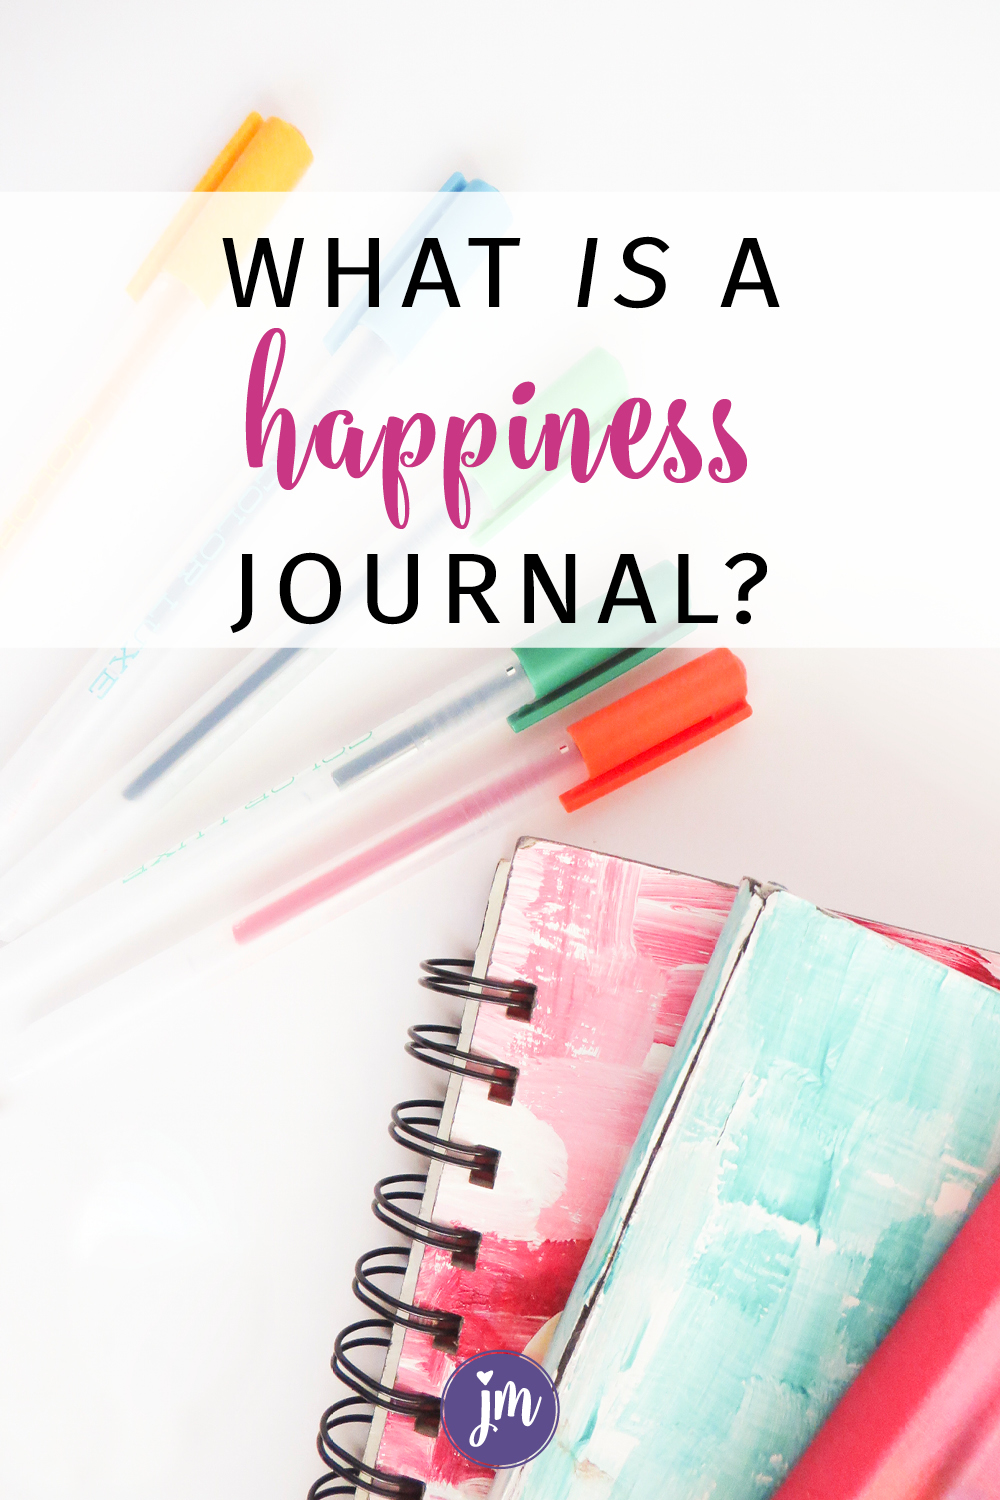 What is a happiness journal anyway? Learn how to start your own happy journal and keep track of the good in your life. This has been sooo good for me. I'm so glad I started a happy journal! This article also includes a free printable to help you get started. #happinessjournal #howtostartahappinessjournal #happyjournal